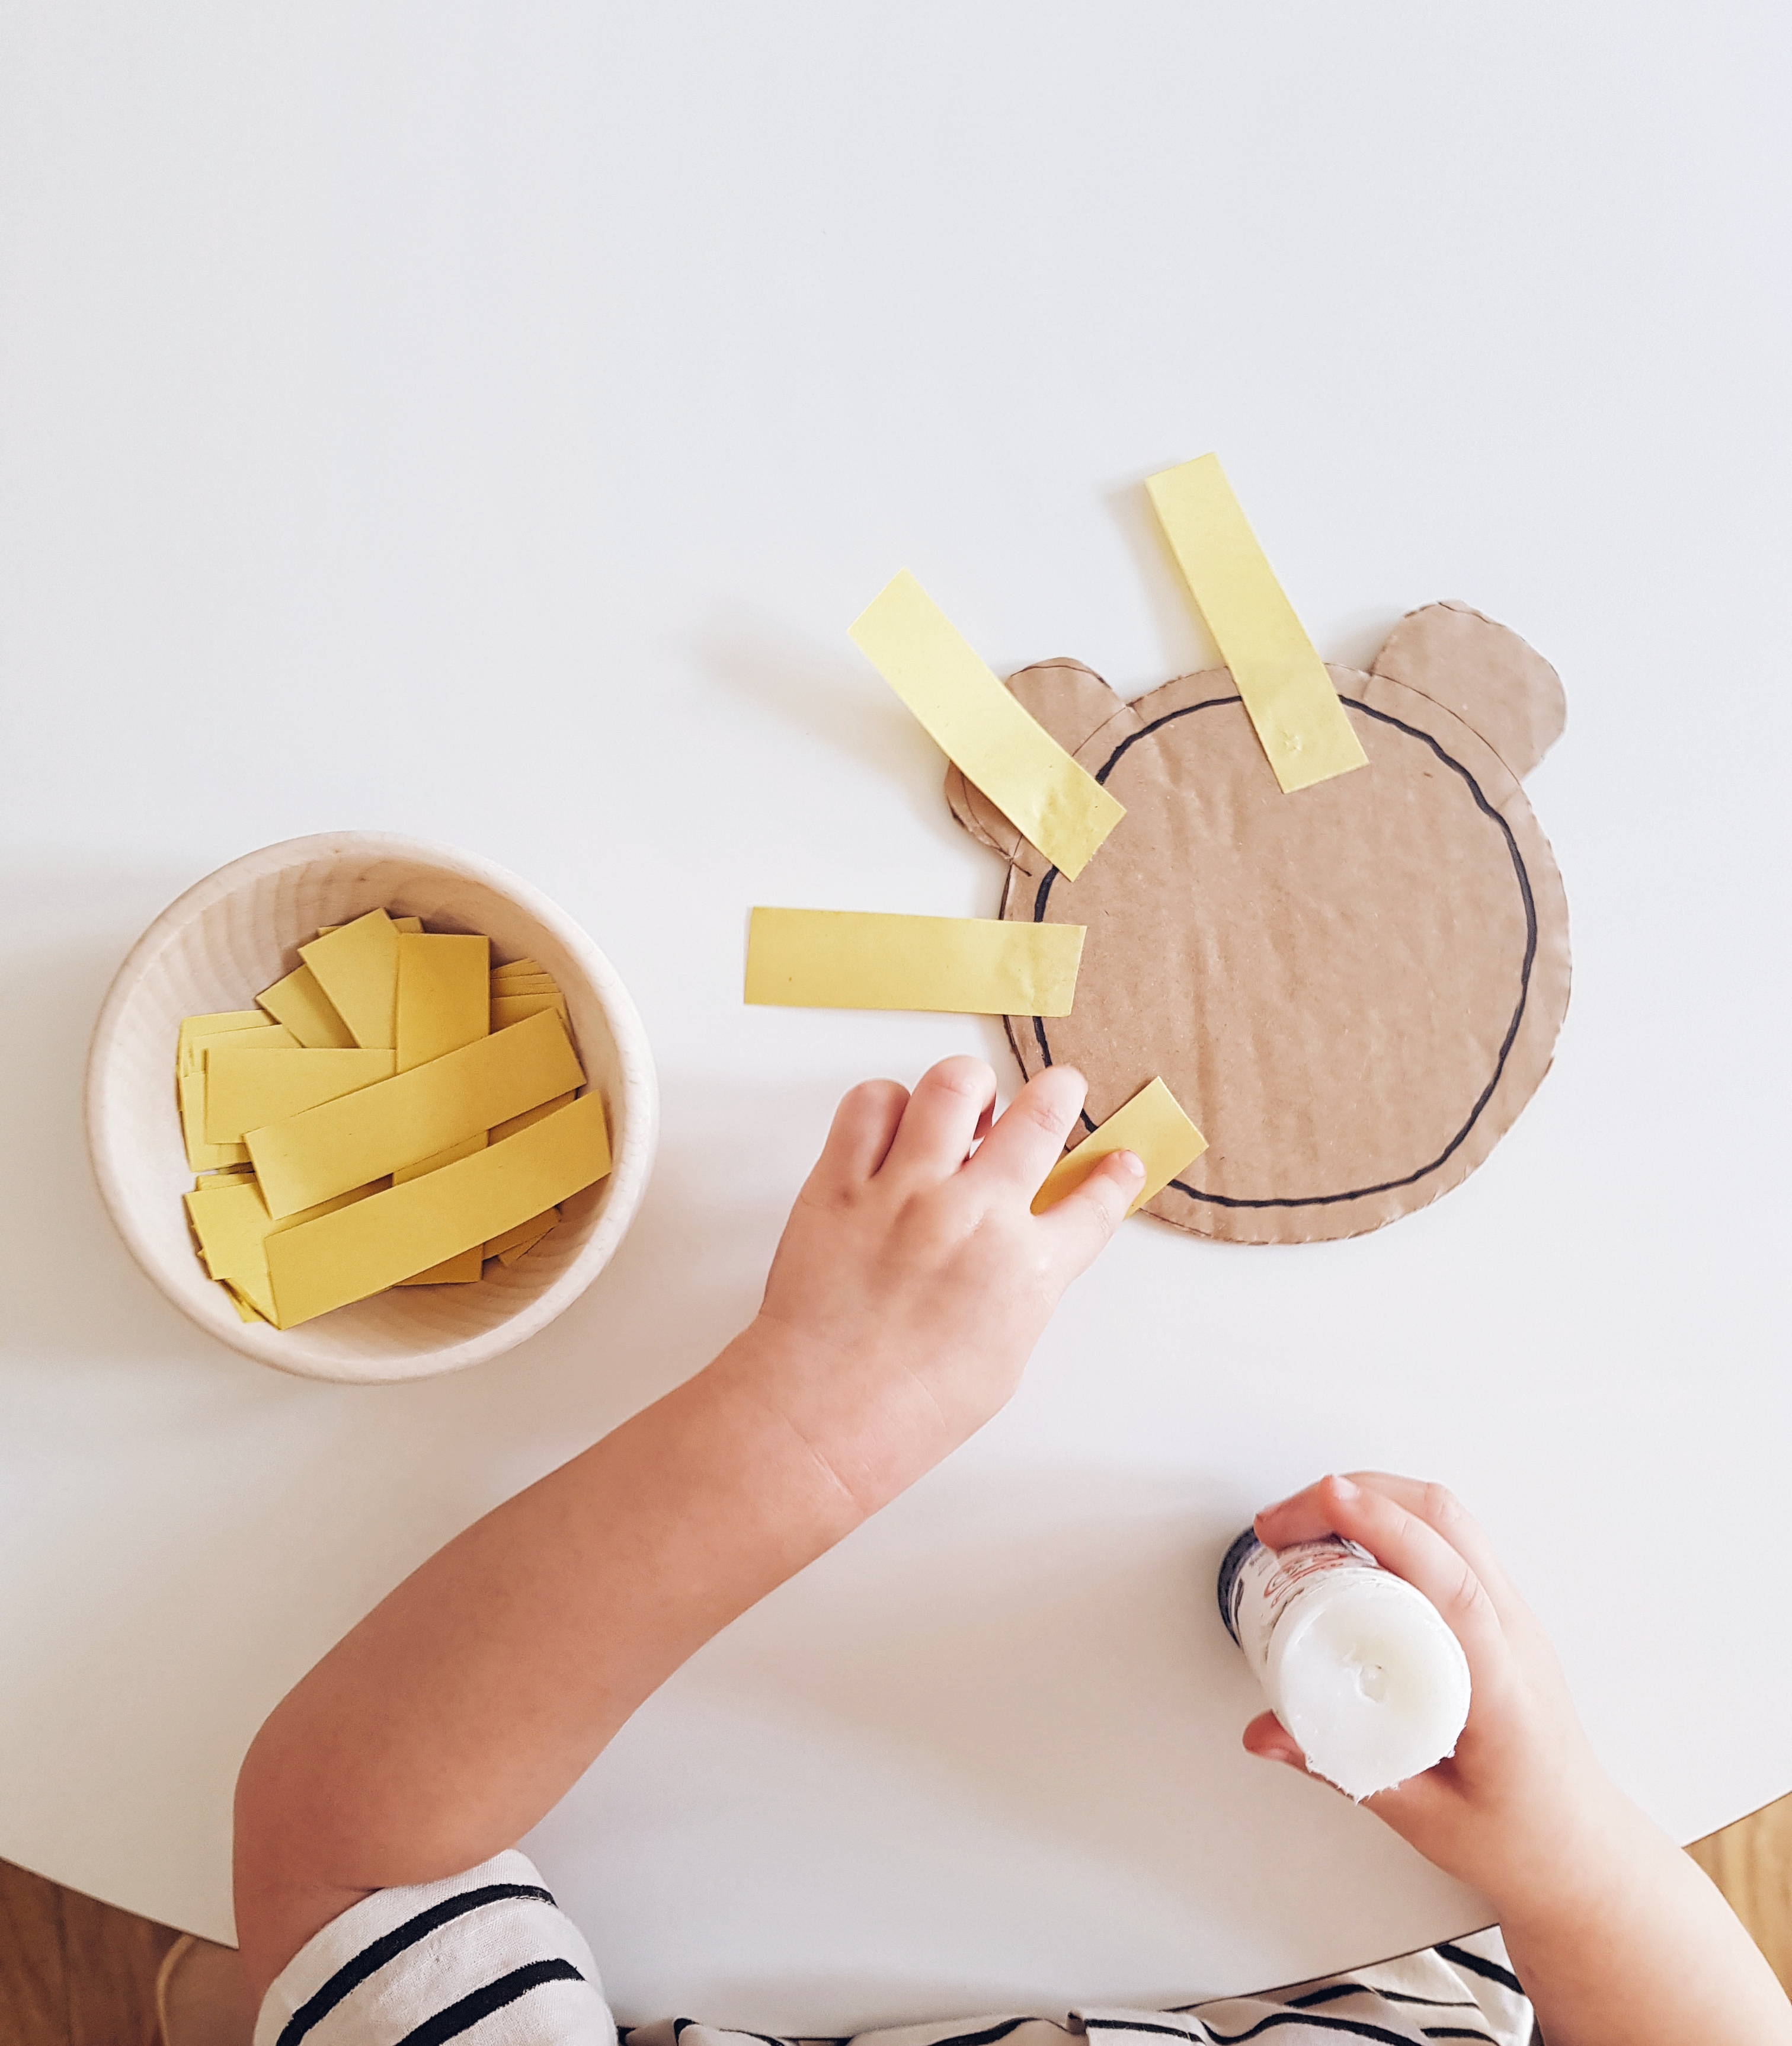 Montessori glueing activity